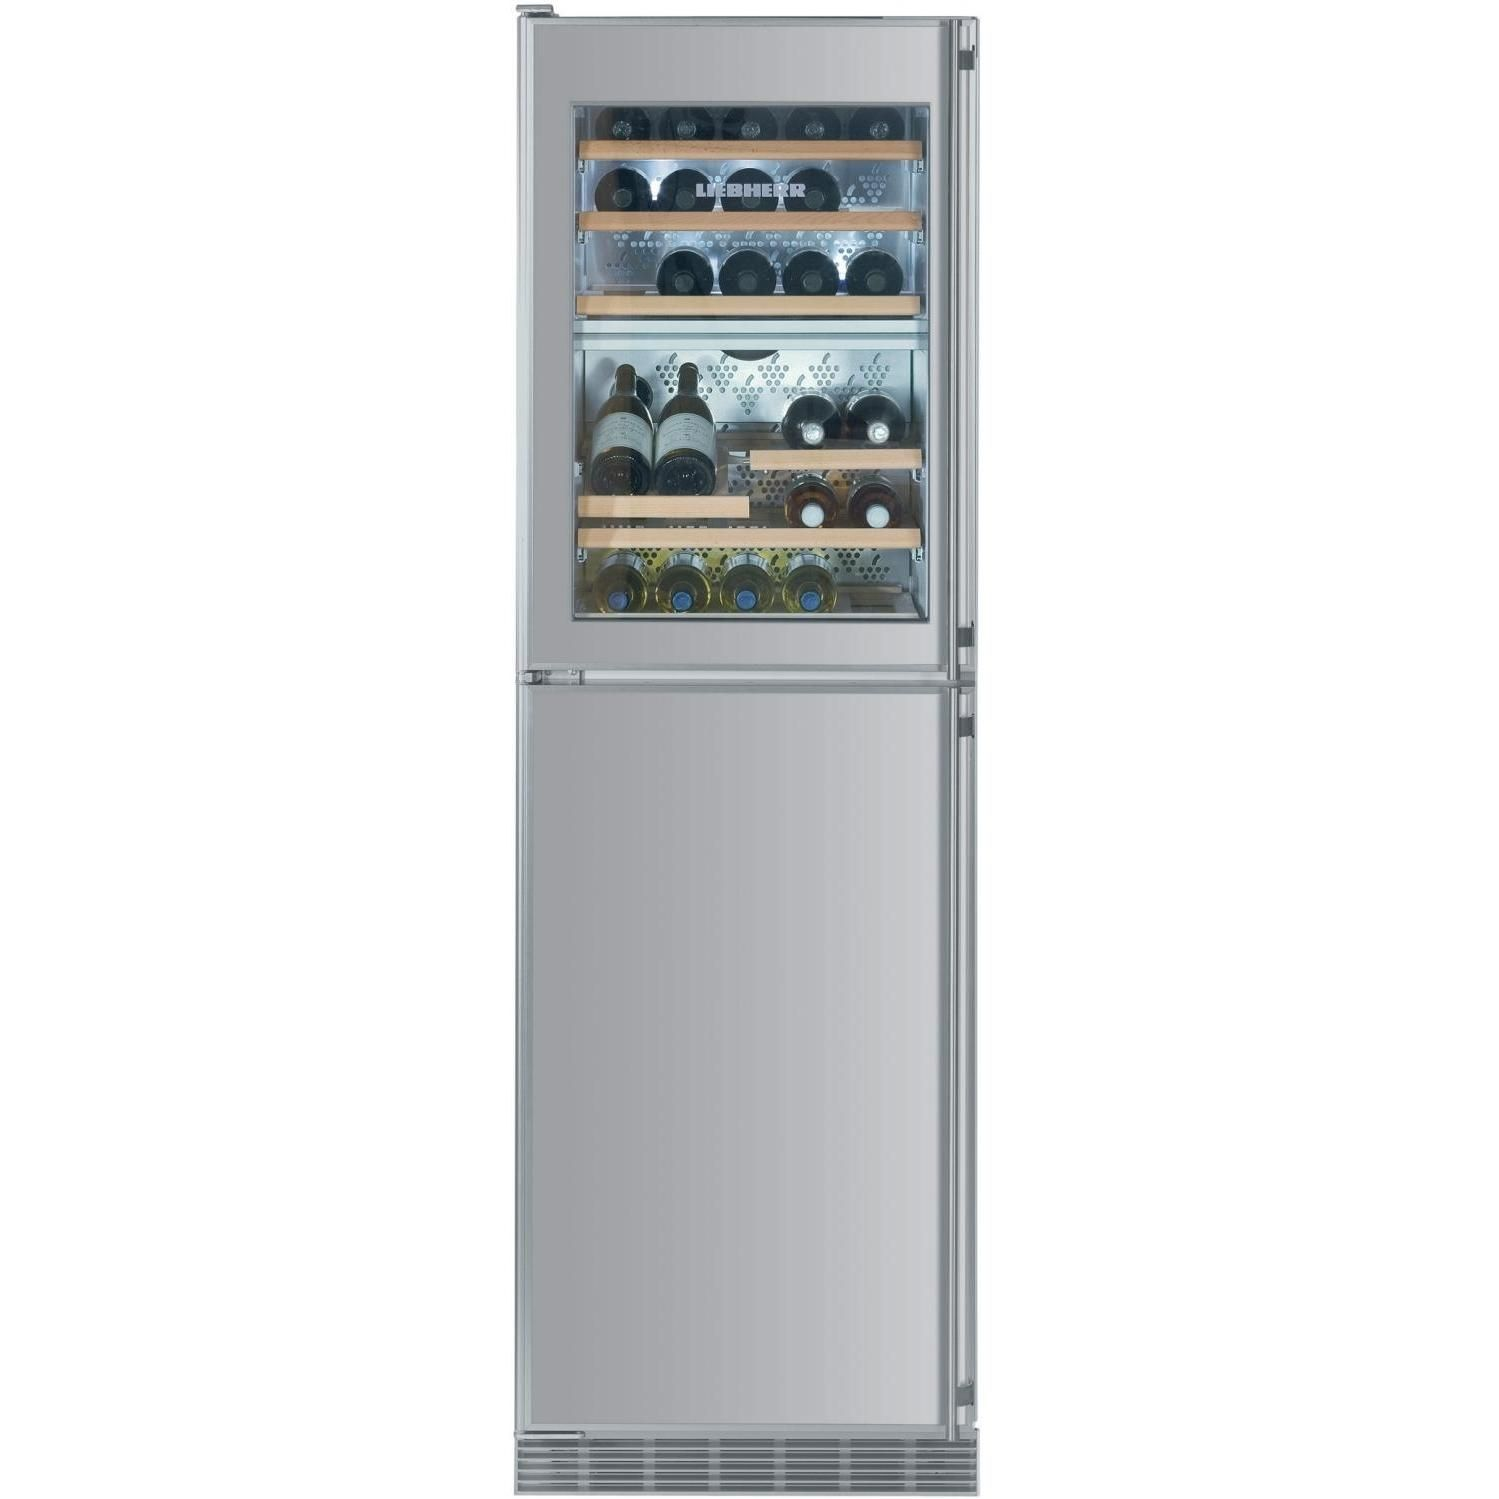 liebherr 34 bottle builtin wine cooler freezer with ice maker stainless steel wf1061 - Built In Wine Fridge